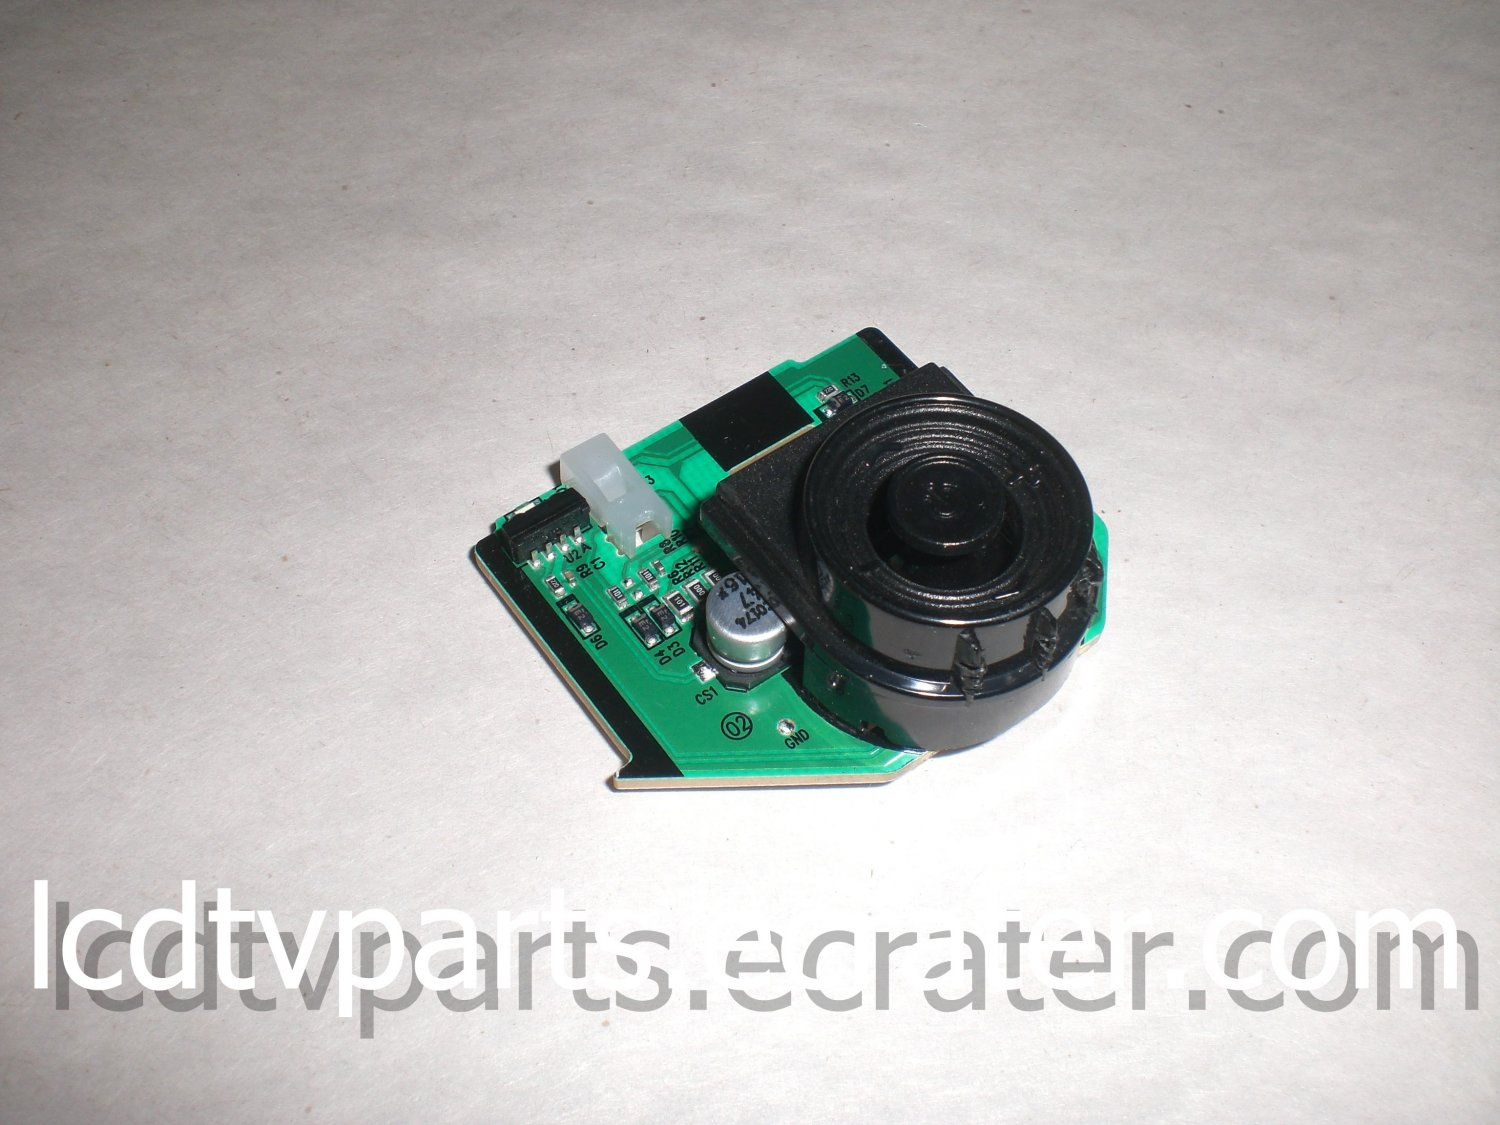 BN41-01806A, E550, POWER BUTTON for SAMSUNG PN60E550D1F